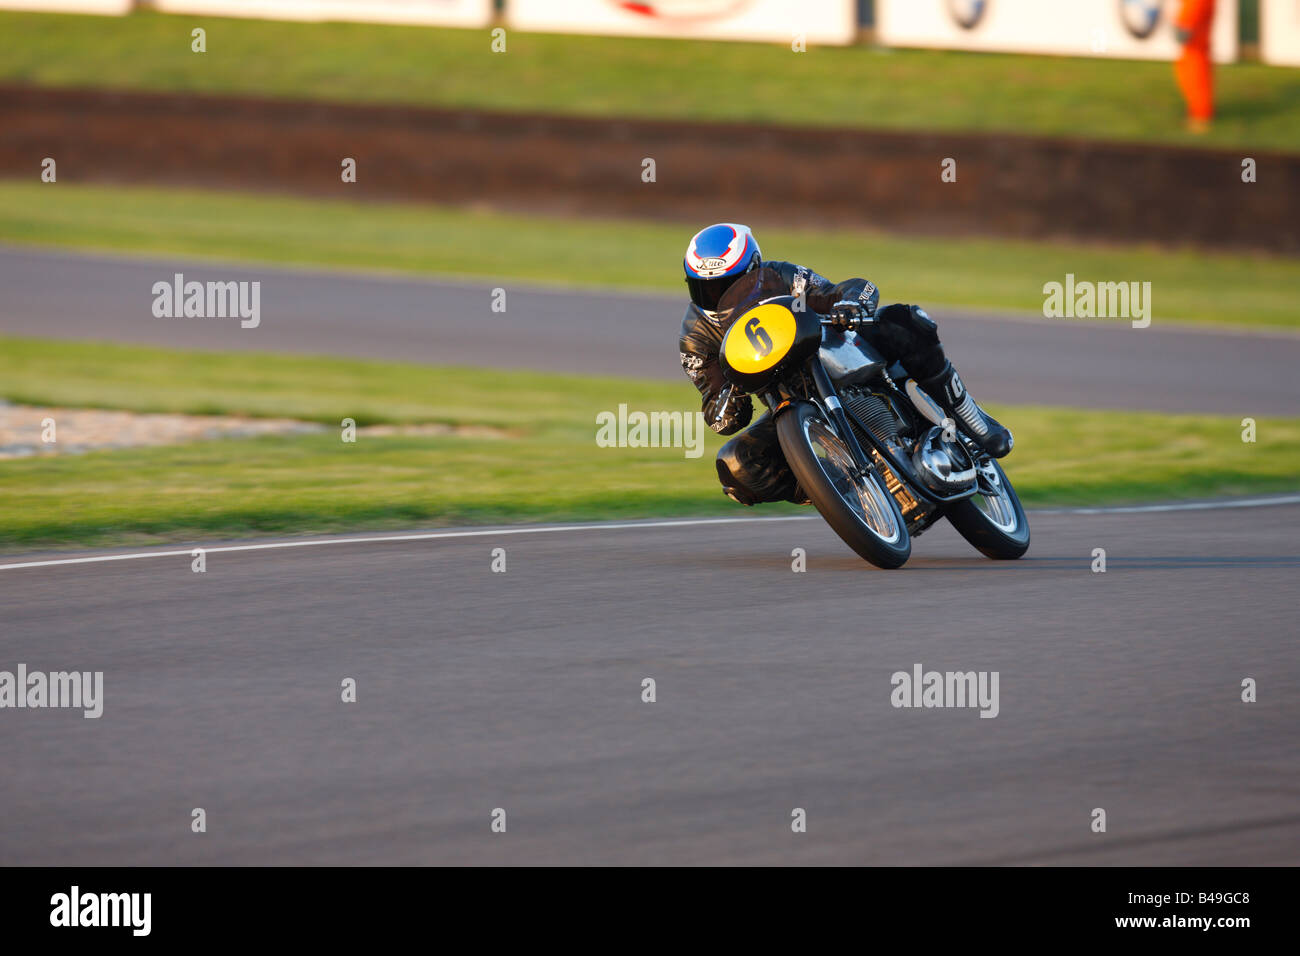 BSA Gold Star ridden by Steve Parrish at Goodwood revival meeting - Stock Image